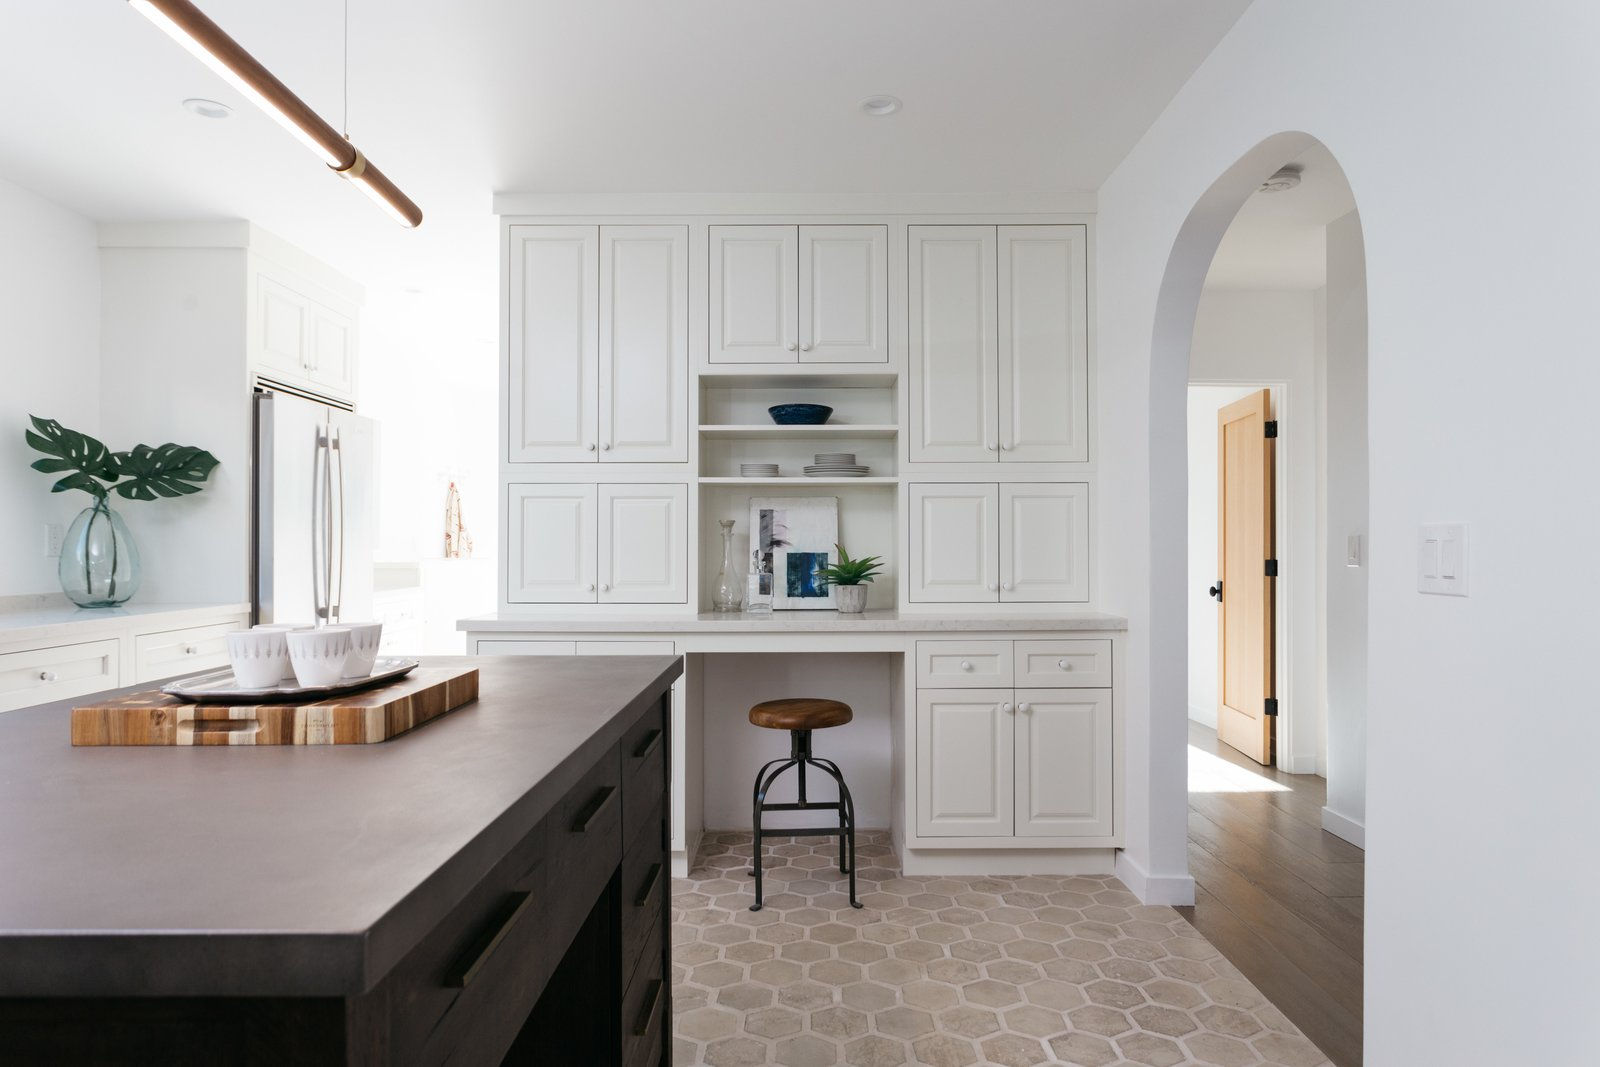 Kitchen, Concrete, Ceramic Tile, Refrigerator, Recessed, Pendant, and White The custom cabinetry includes ample storage and a convenient mini desk.  Best Kitchen Ceramic Tile Pendant Refrigerator Concrete Photos from An Updated Spanish-Style Abode with an Artist Studio Hits the Market at $1.1M in L.A.